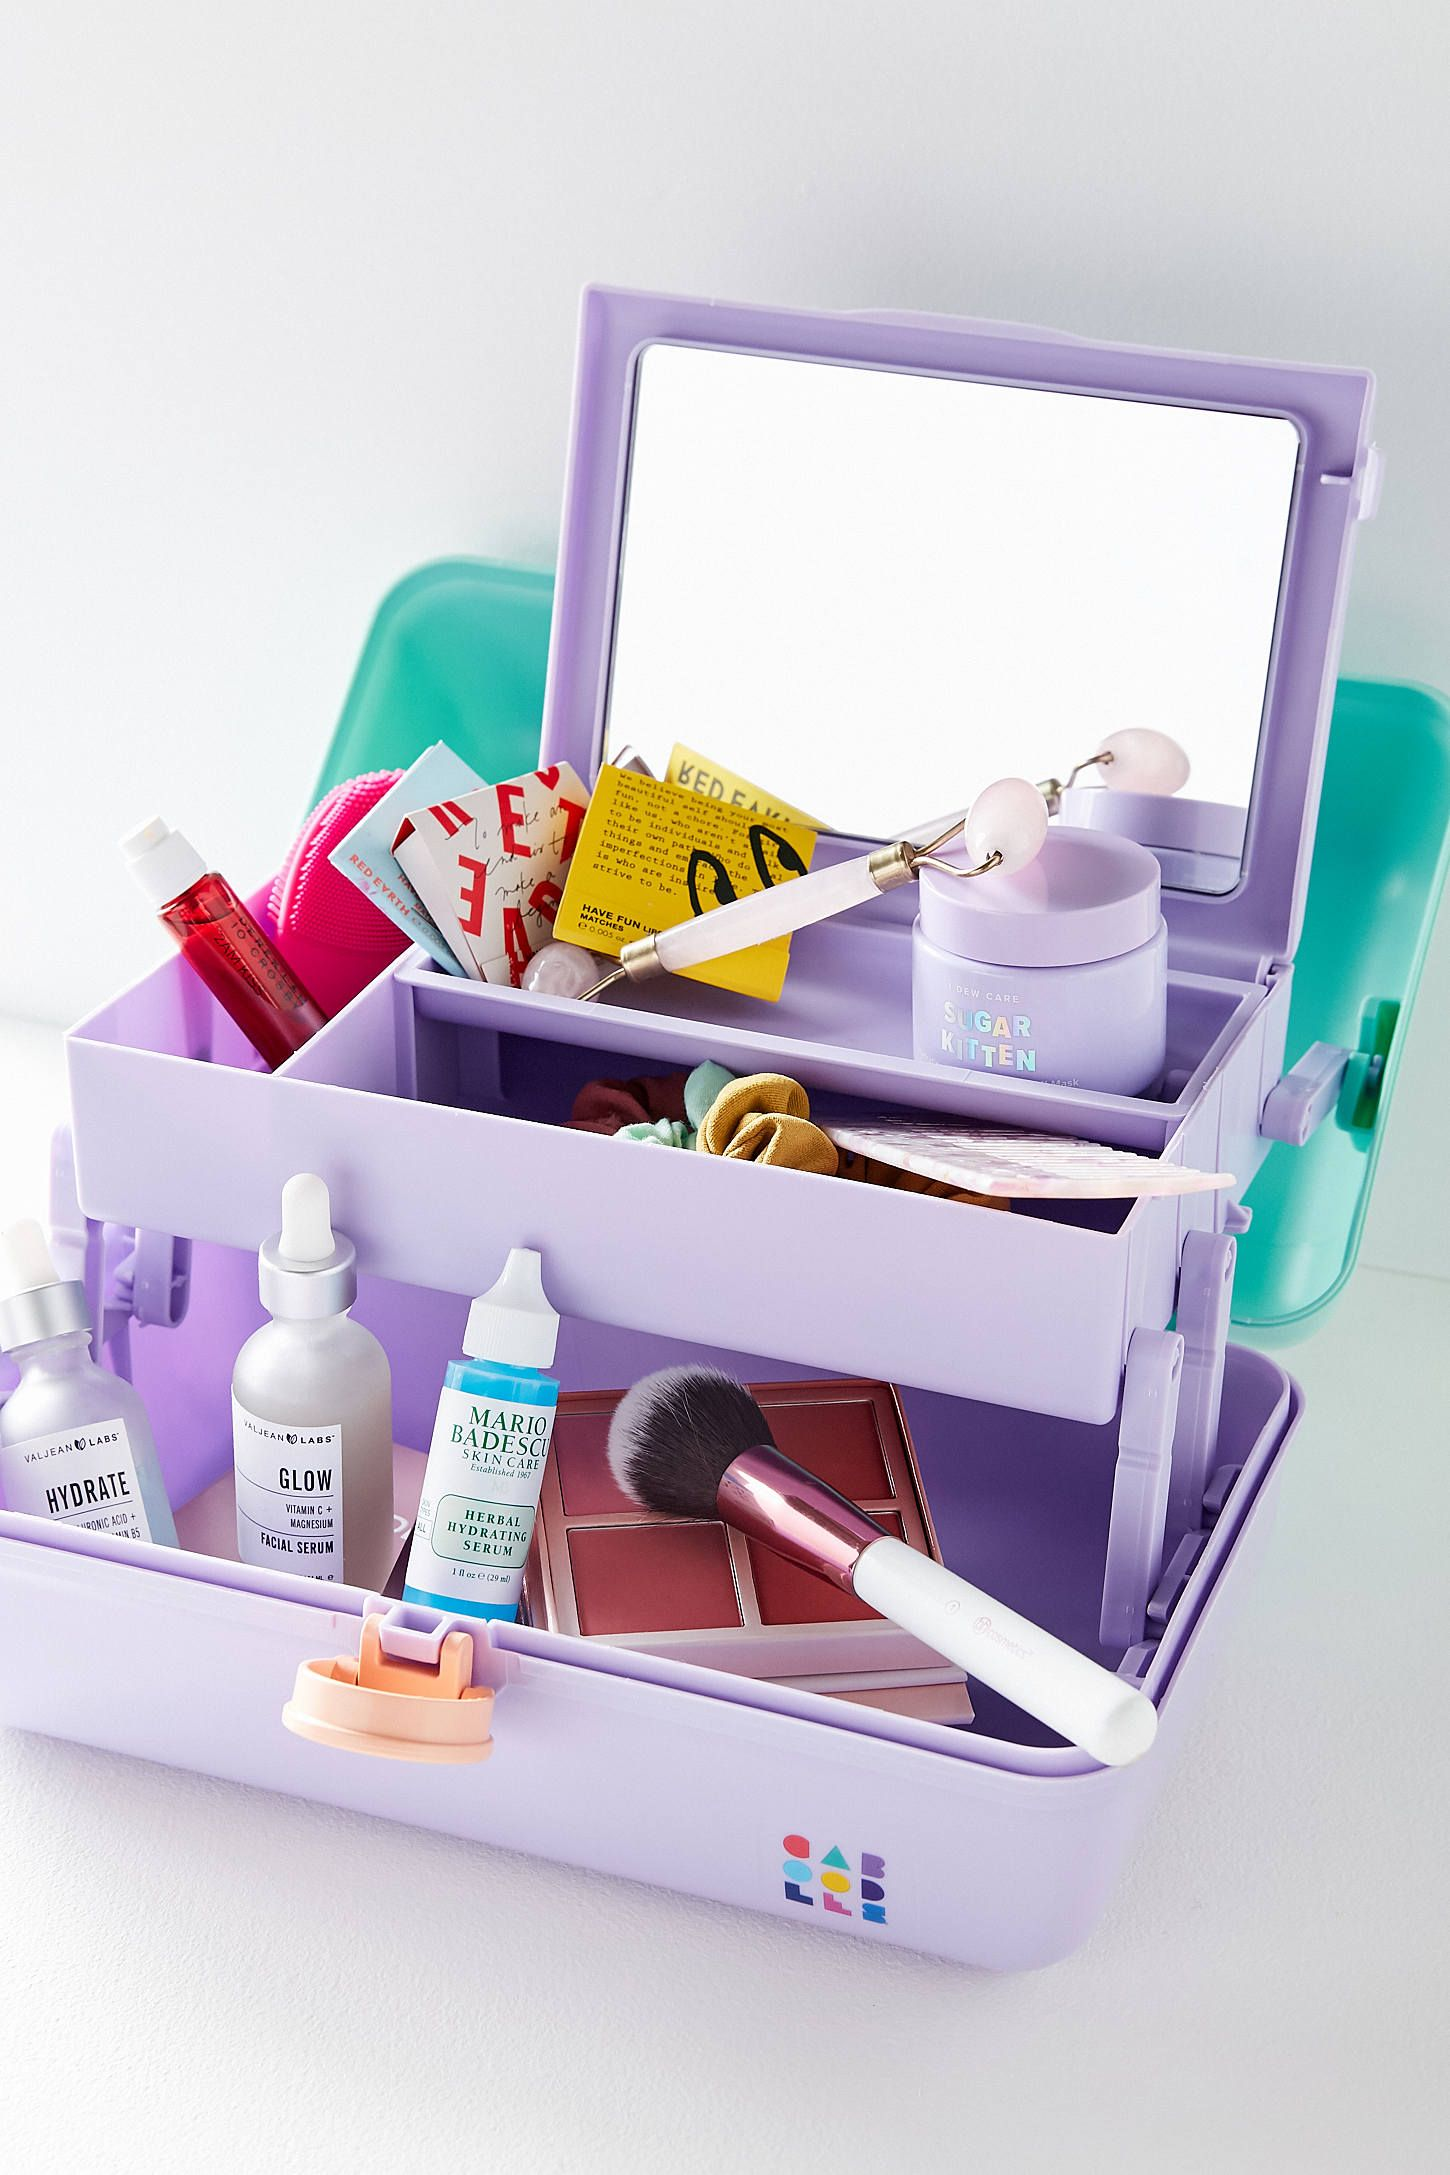 Caboodles On The Go Girl Makeup Case Caboodles Makeup Cases Makeup Case Makeup Carrying Case